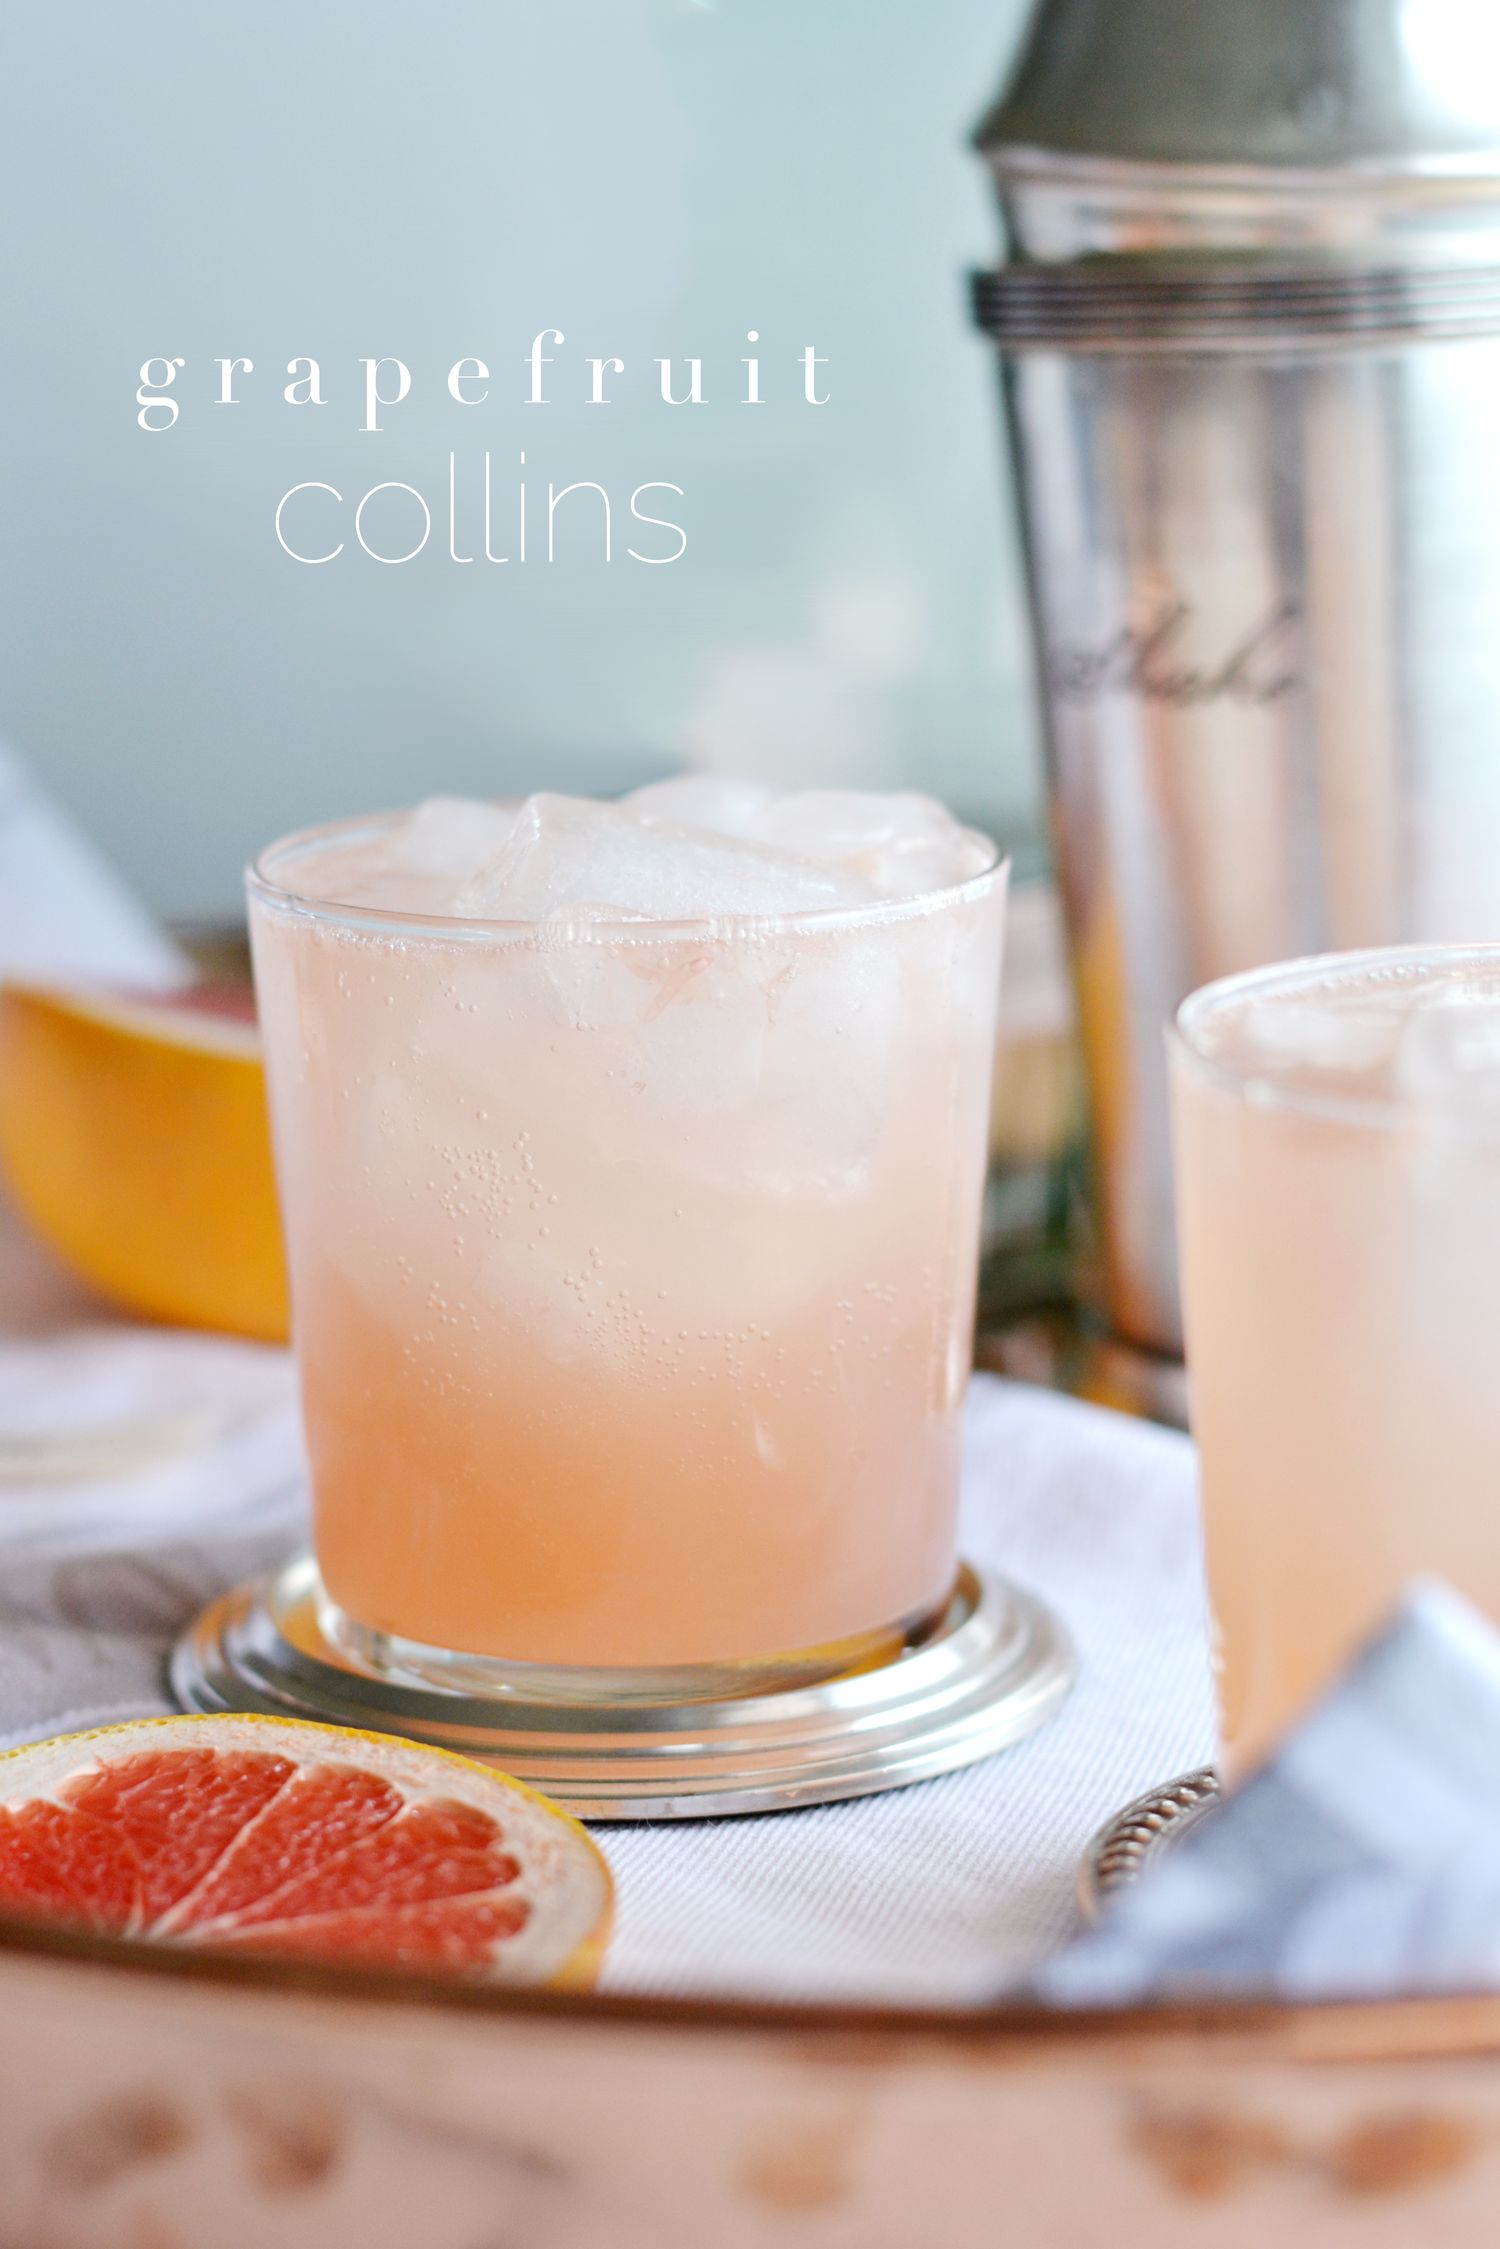 Grapefruit Collins | Toasting From Afar Week 1 - Boxwood Ave